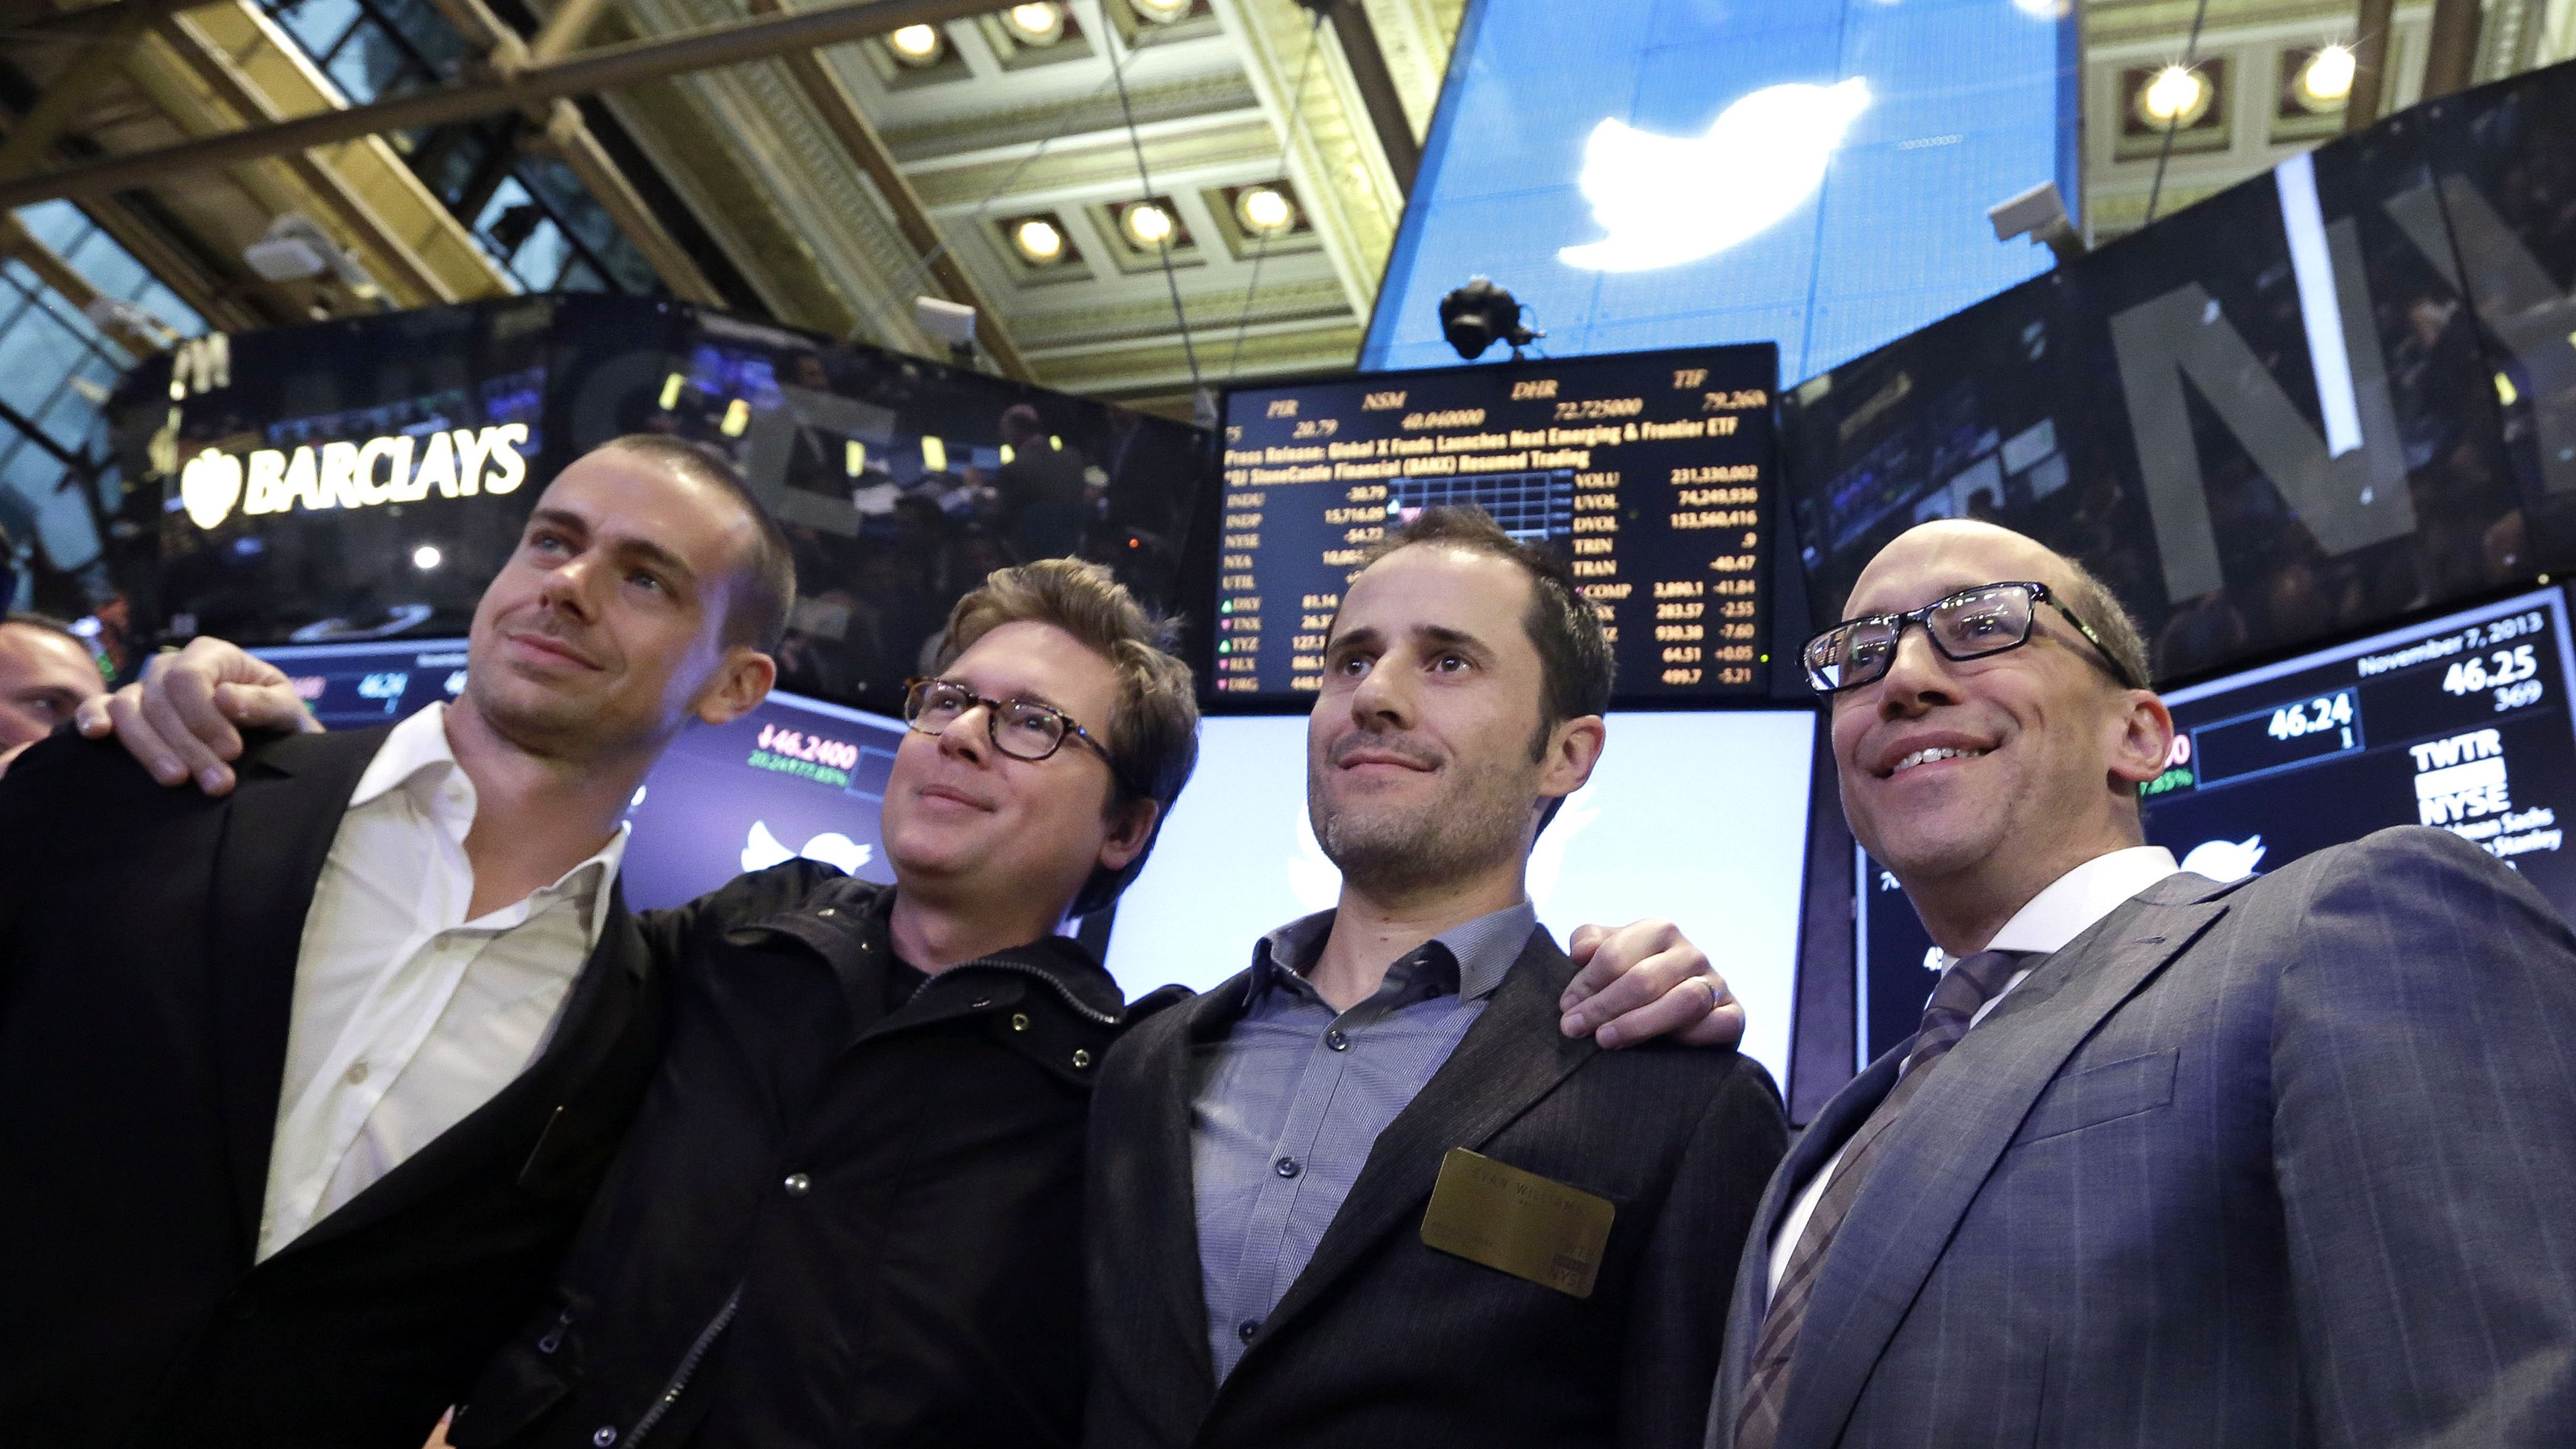 Twitter Chairman and co-founder Jack Dorsey, co-founders Biz Stone and Evan Williams and, Twitter CEO Dick Costolo pose for a group photo after their company's IPO began trading, on the floor of the New York Stock Exchange, Thursday, Nov. 7, 2013. If Twitter's bankers and executives were hoping for a surge on the day of the stock's public debut, they got it. The stock opened at $45.10 a share on its first day of trading, 73 percent above its initial offering price. (AP Photo/Richard Drew)